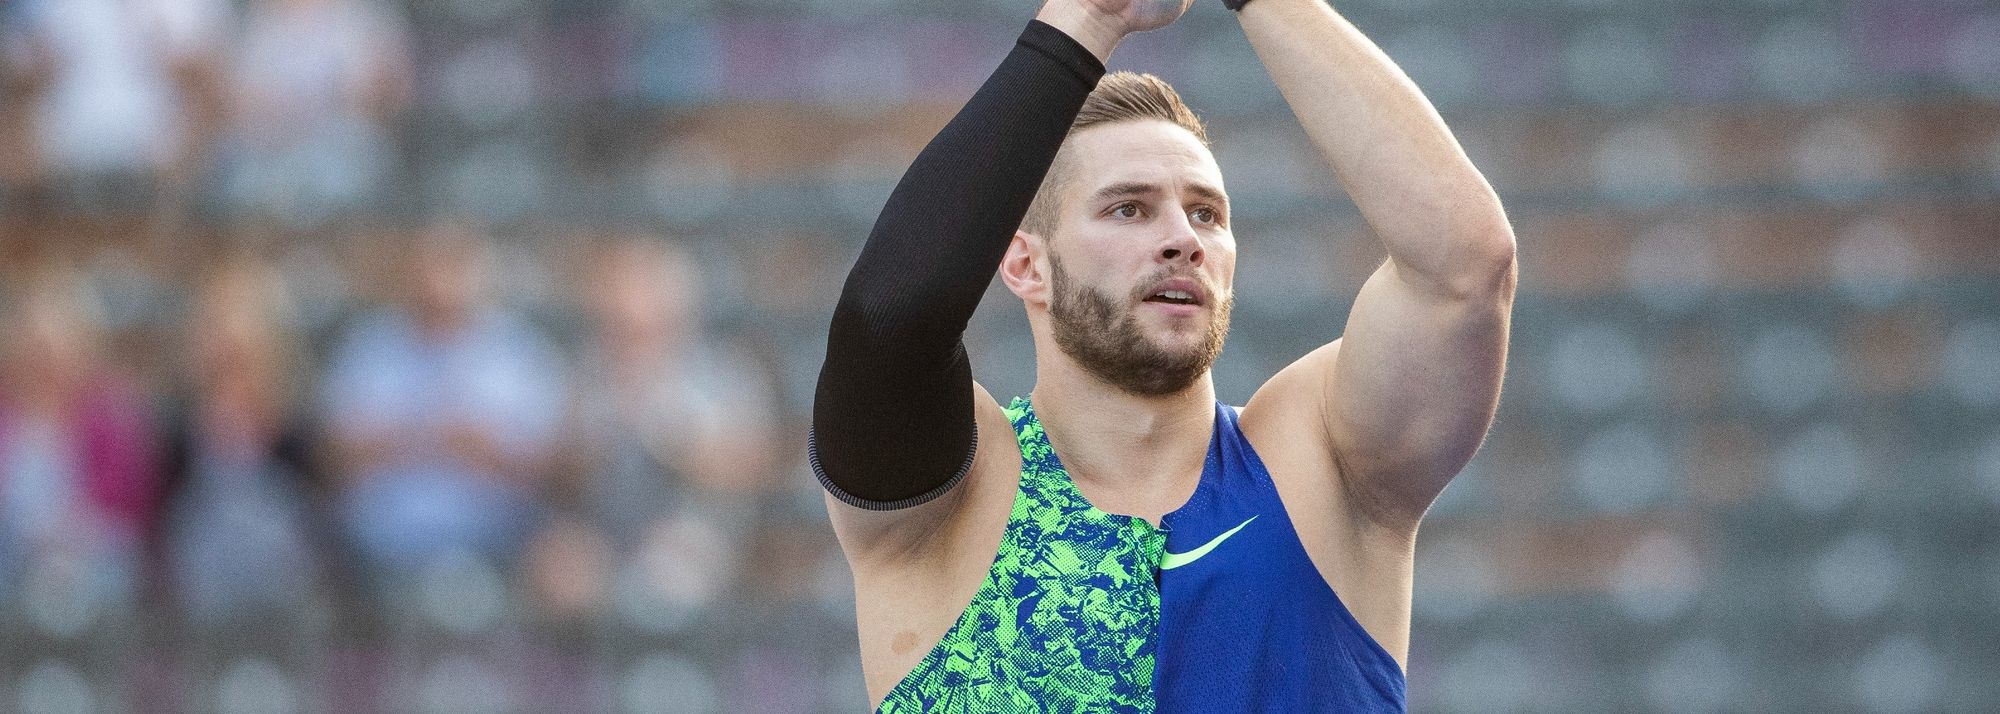 German star Johannes Vetter grabbed the headlines by throwing 92.14m in the men's javelin on a cool and rainy evening at the Spitzen Leichtathletik meeting.